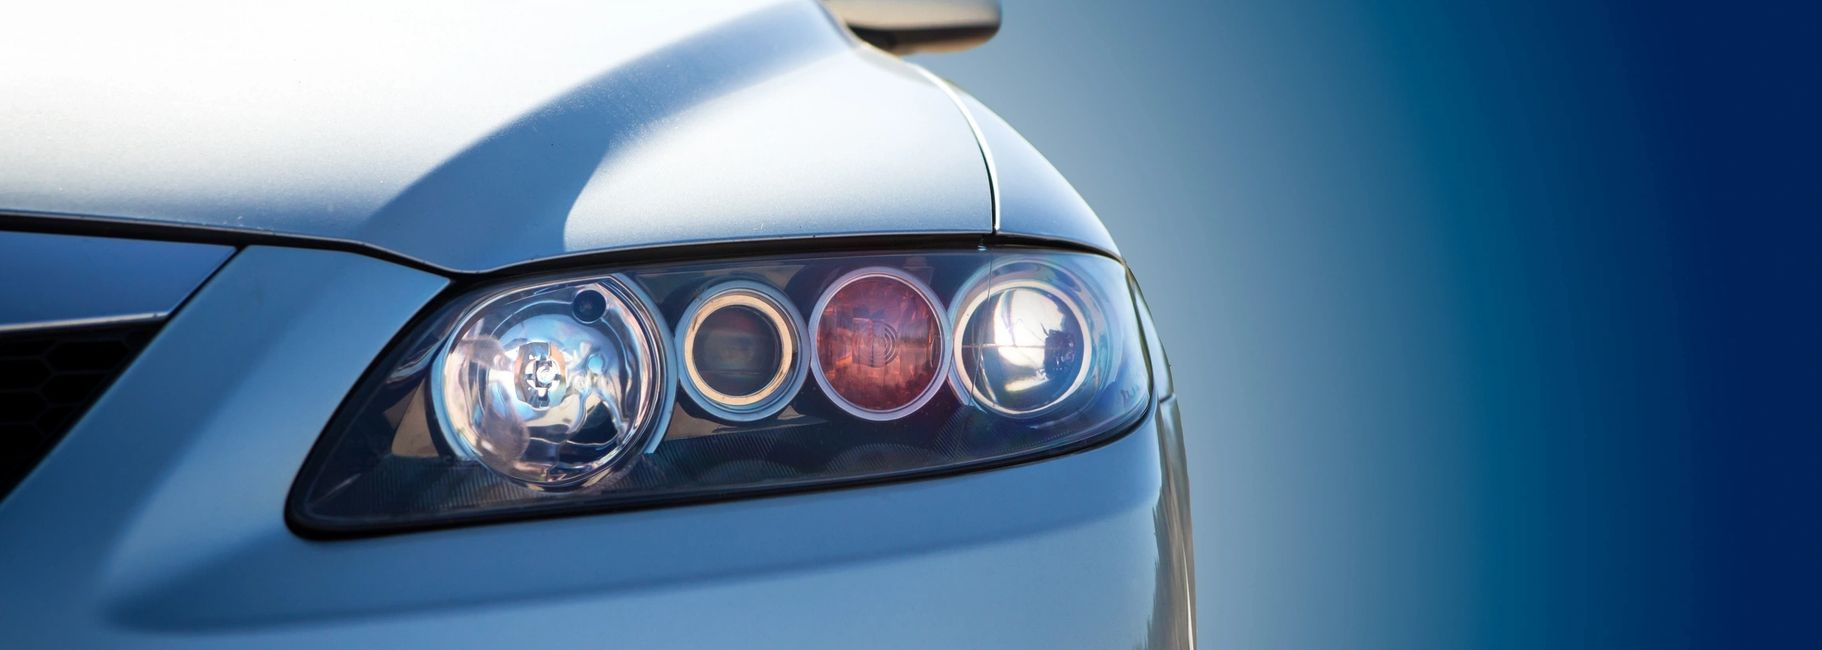 Vehicle headlight. Auto insurance by Insurance Masters NW in Portland, Oregon